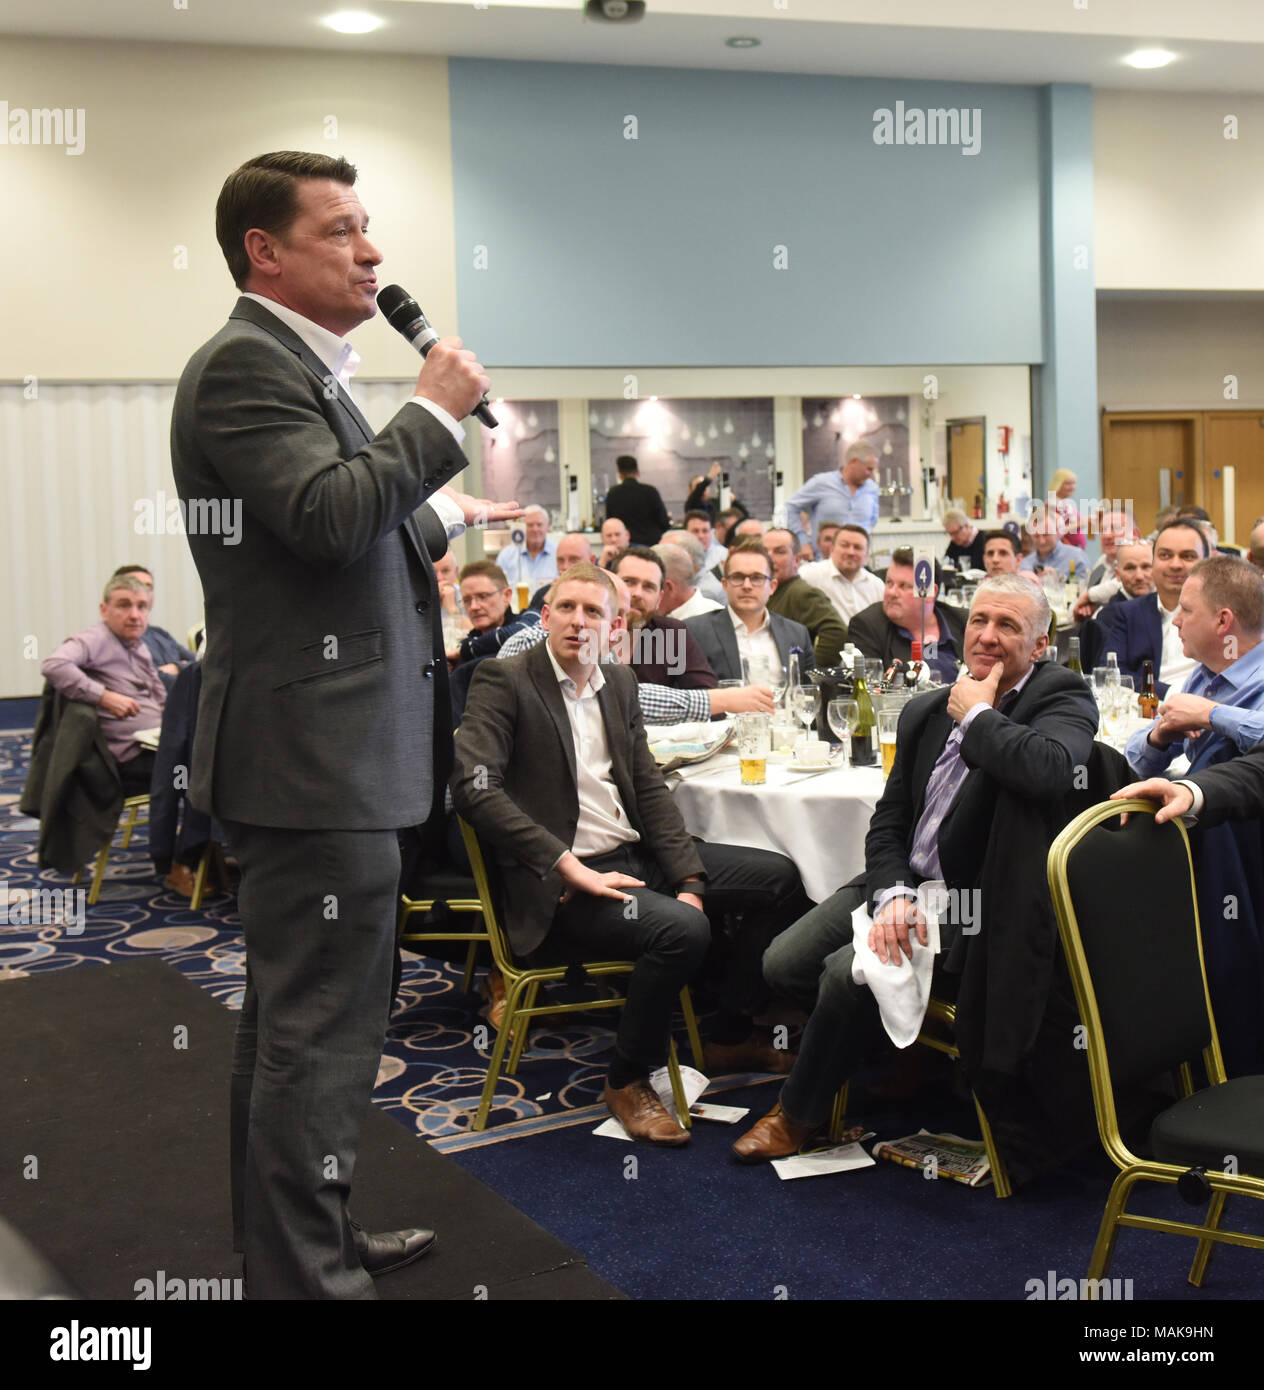 After dinner speaker former footballer Tony Cottee - Stock Image